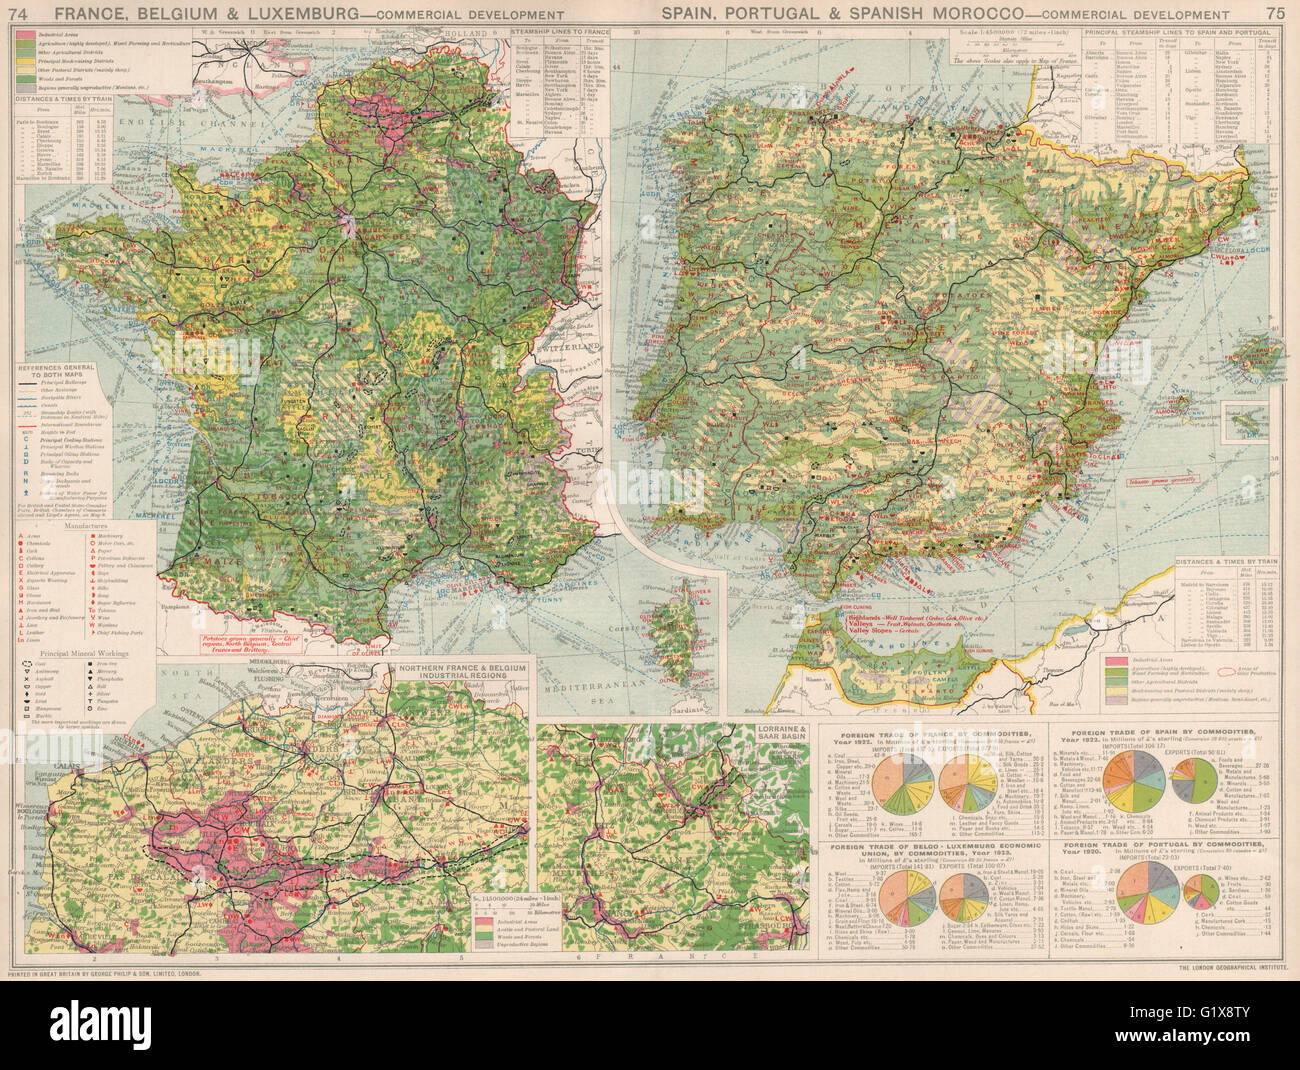 france belgium spain portugal commercial development manufacturing 1925 map stock image